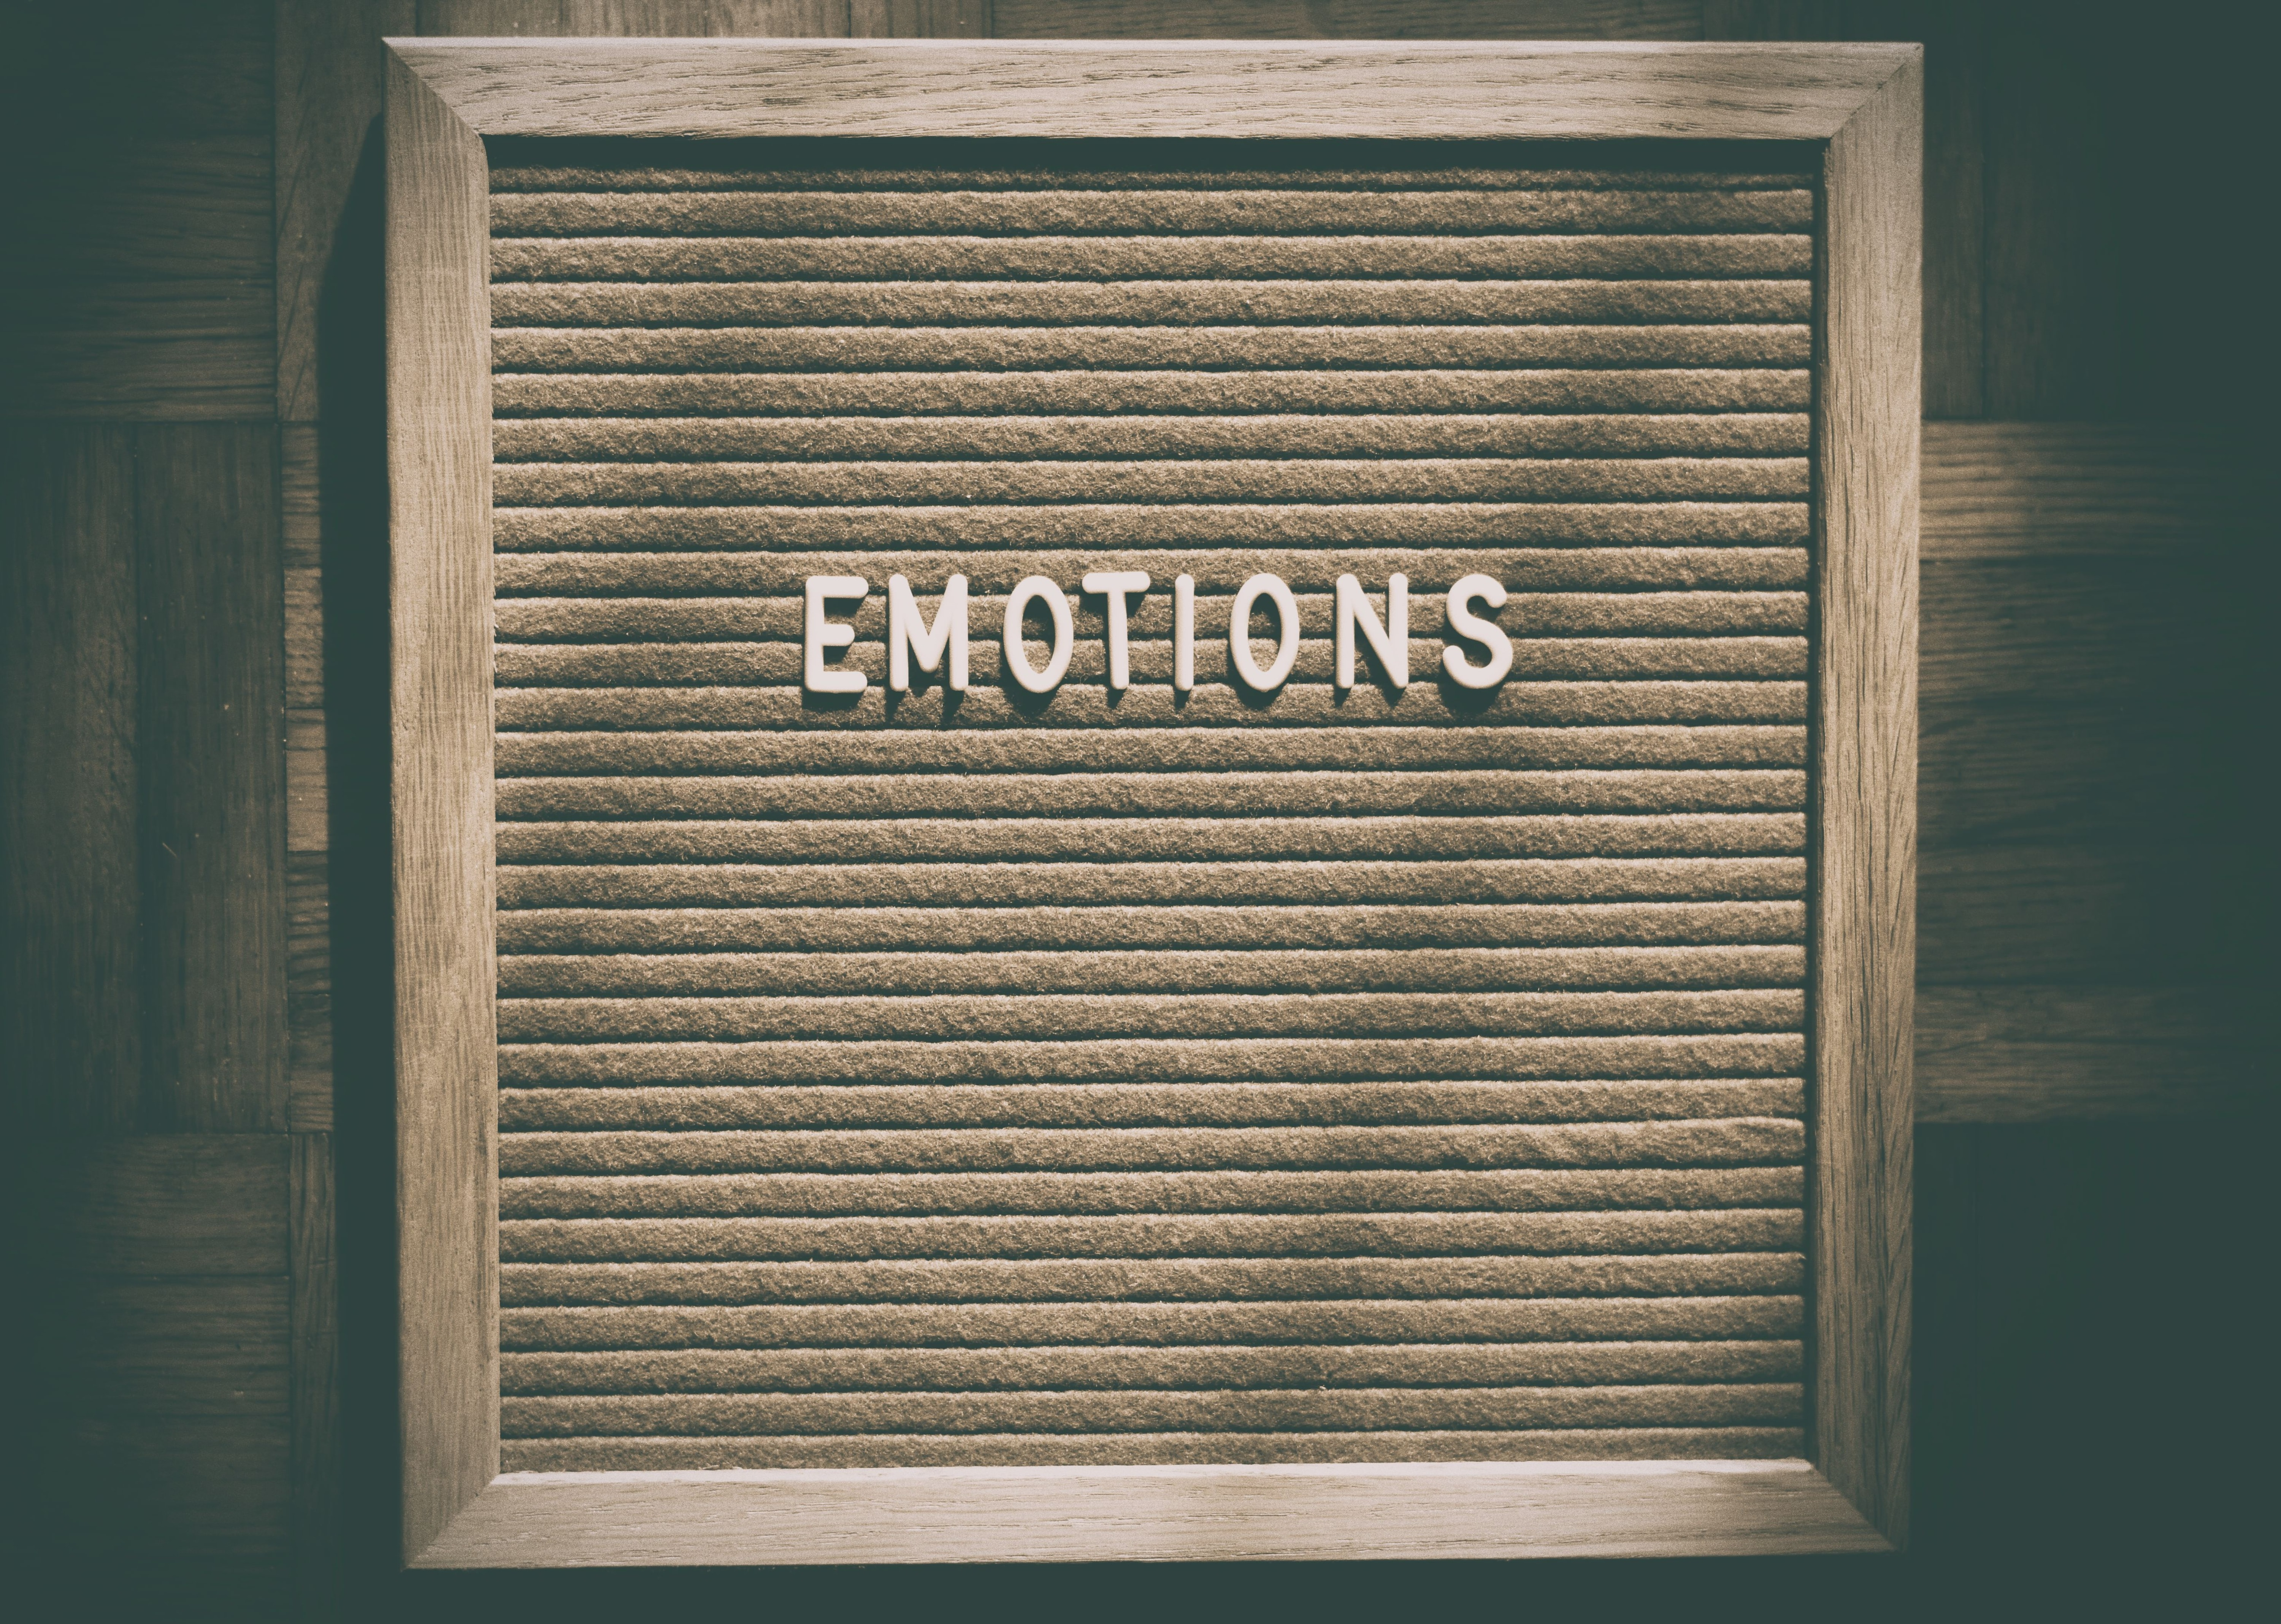 How to access your emotional intelligence